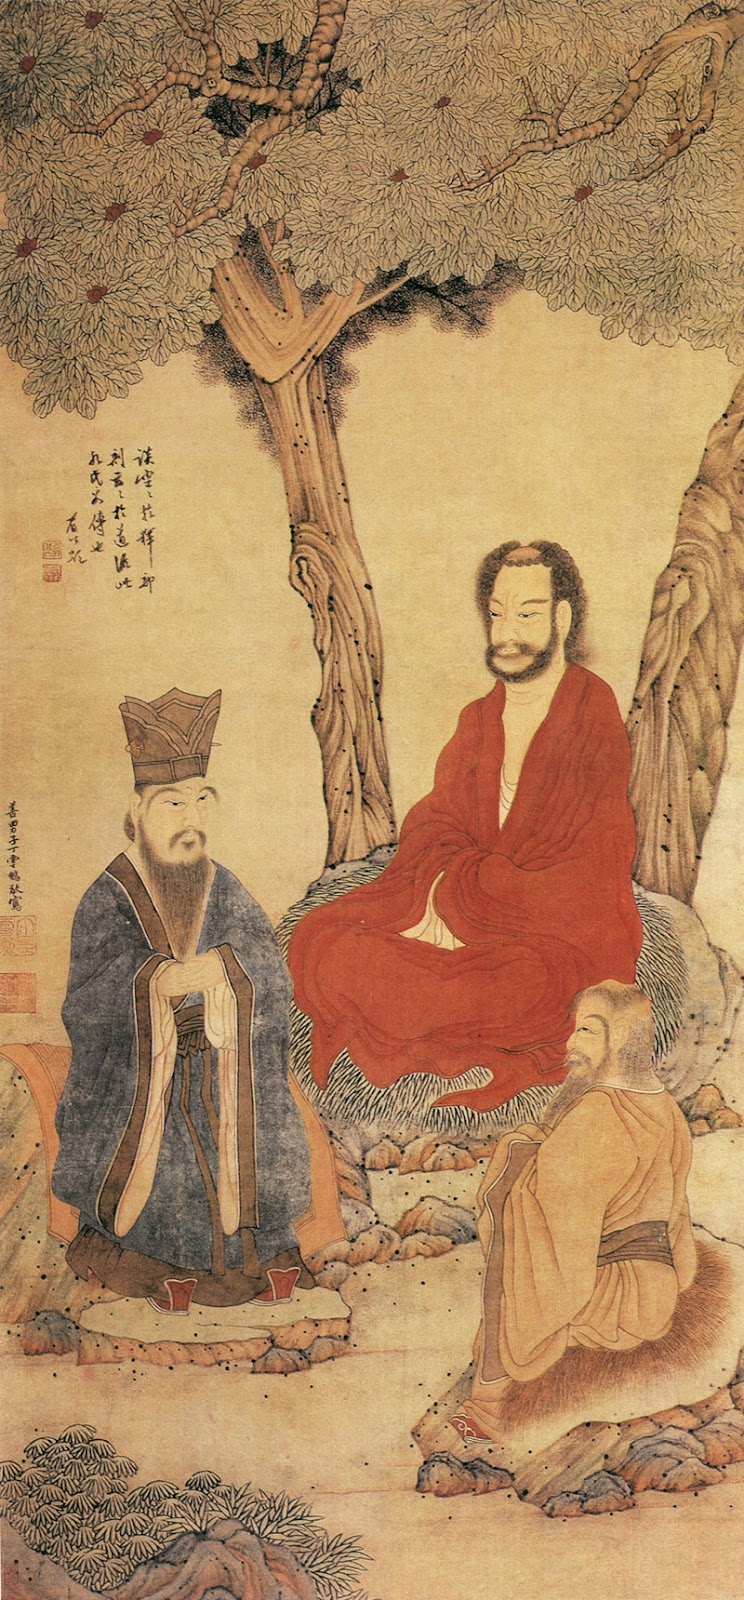 comparison lao tzu and machiavelli Free college essay machiavelli vs lao-tzu in comparing and contrasting the governmental philosophies of the great thinkers lao-tzu and machiavelli, i have found a.